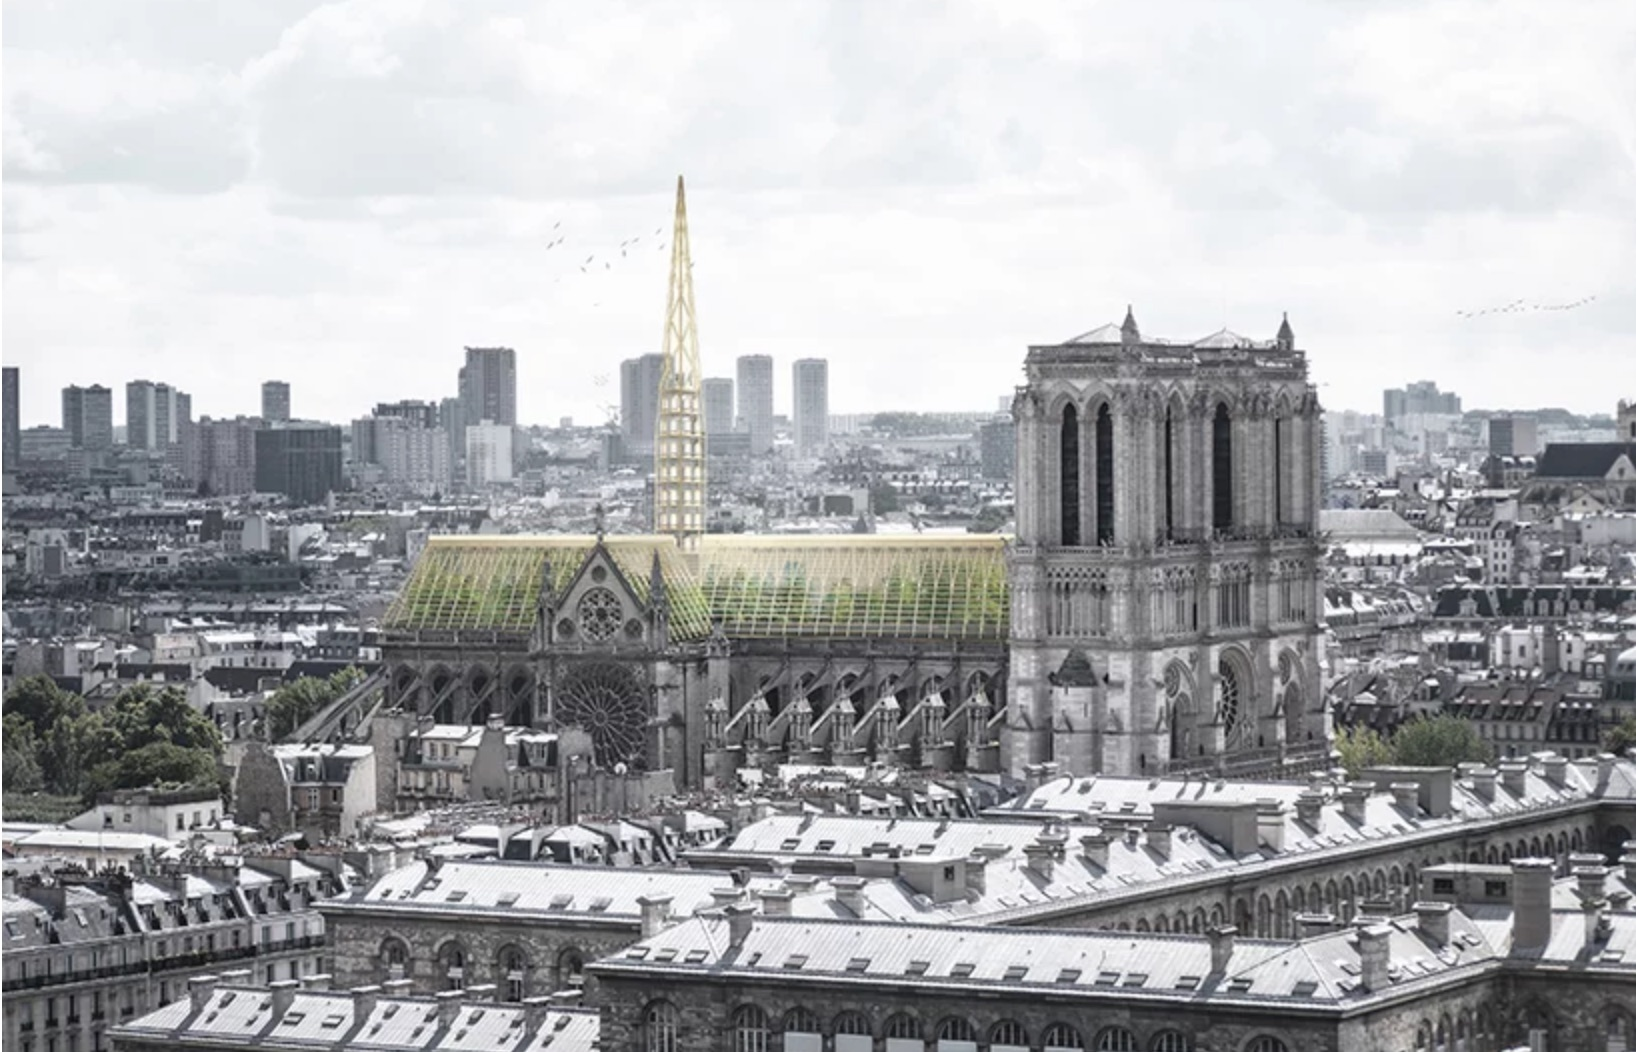 Notre Dame roof reimagined as a giant greenhouse